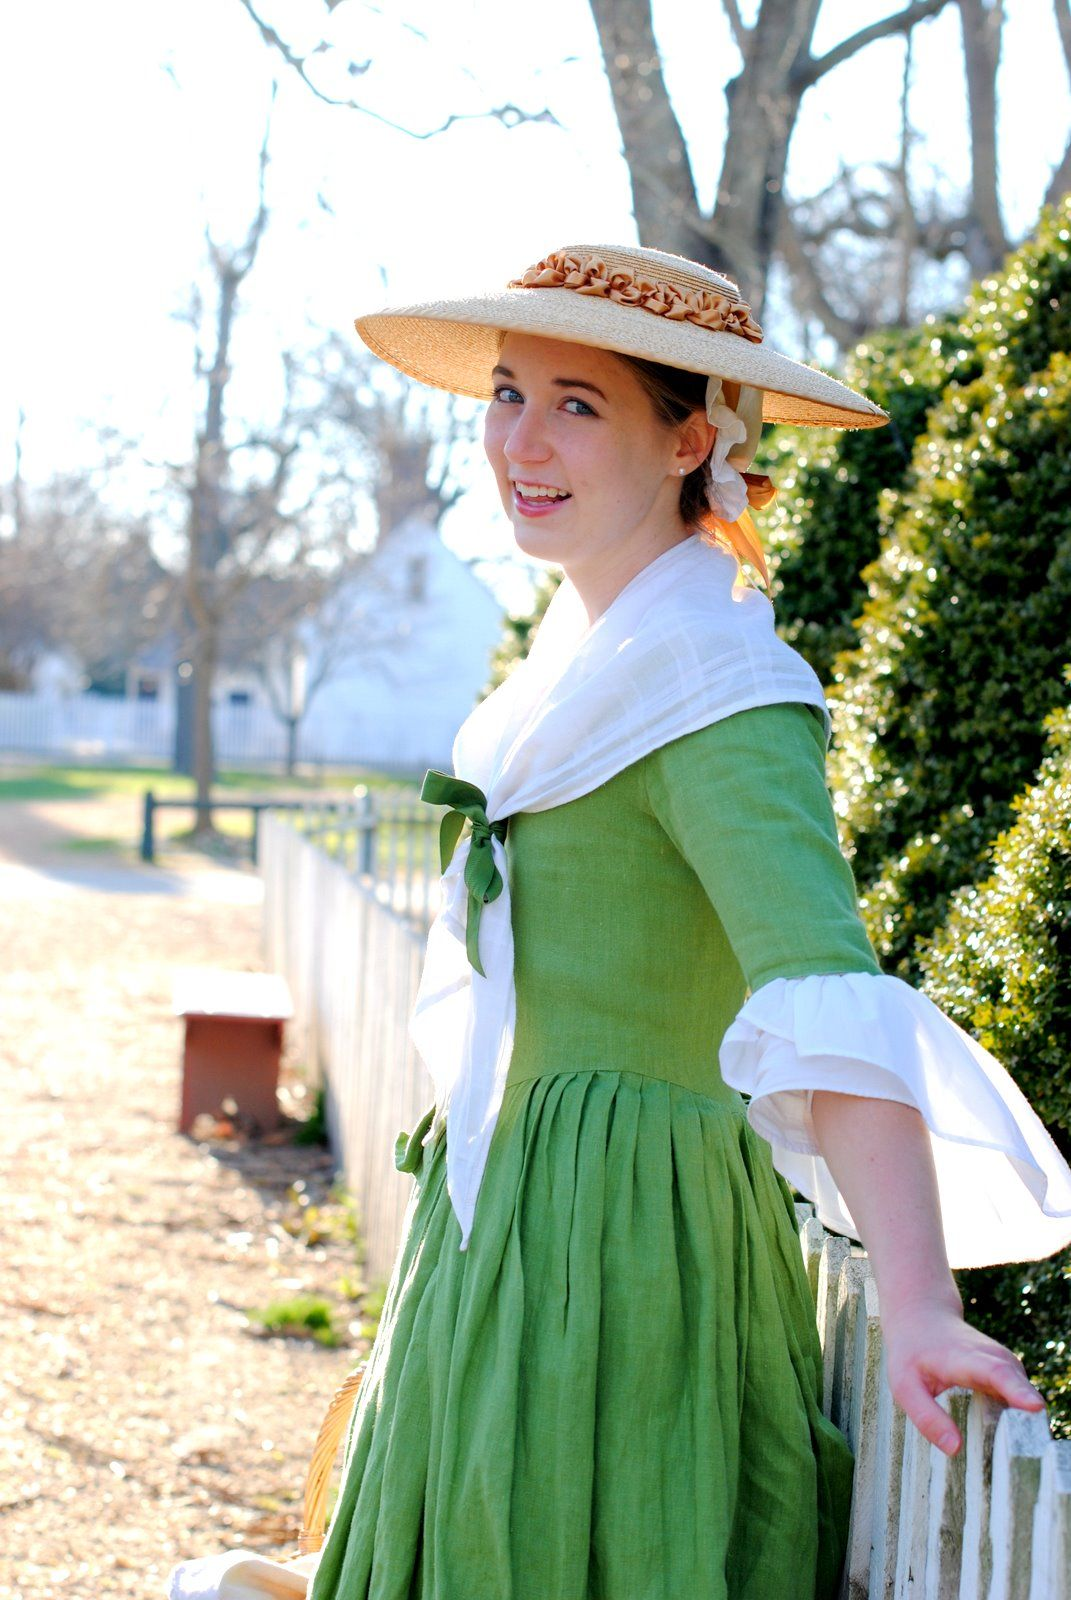 Colonial Style Fashions 1700s Colonial Costume Fashion 18th